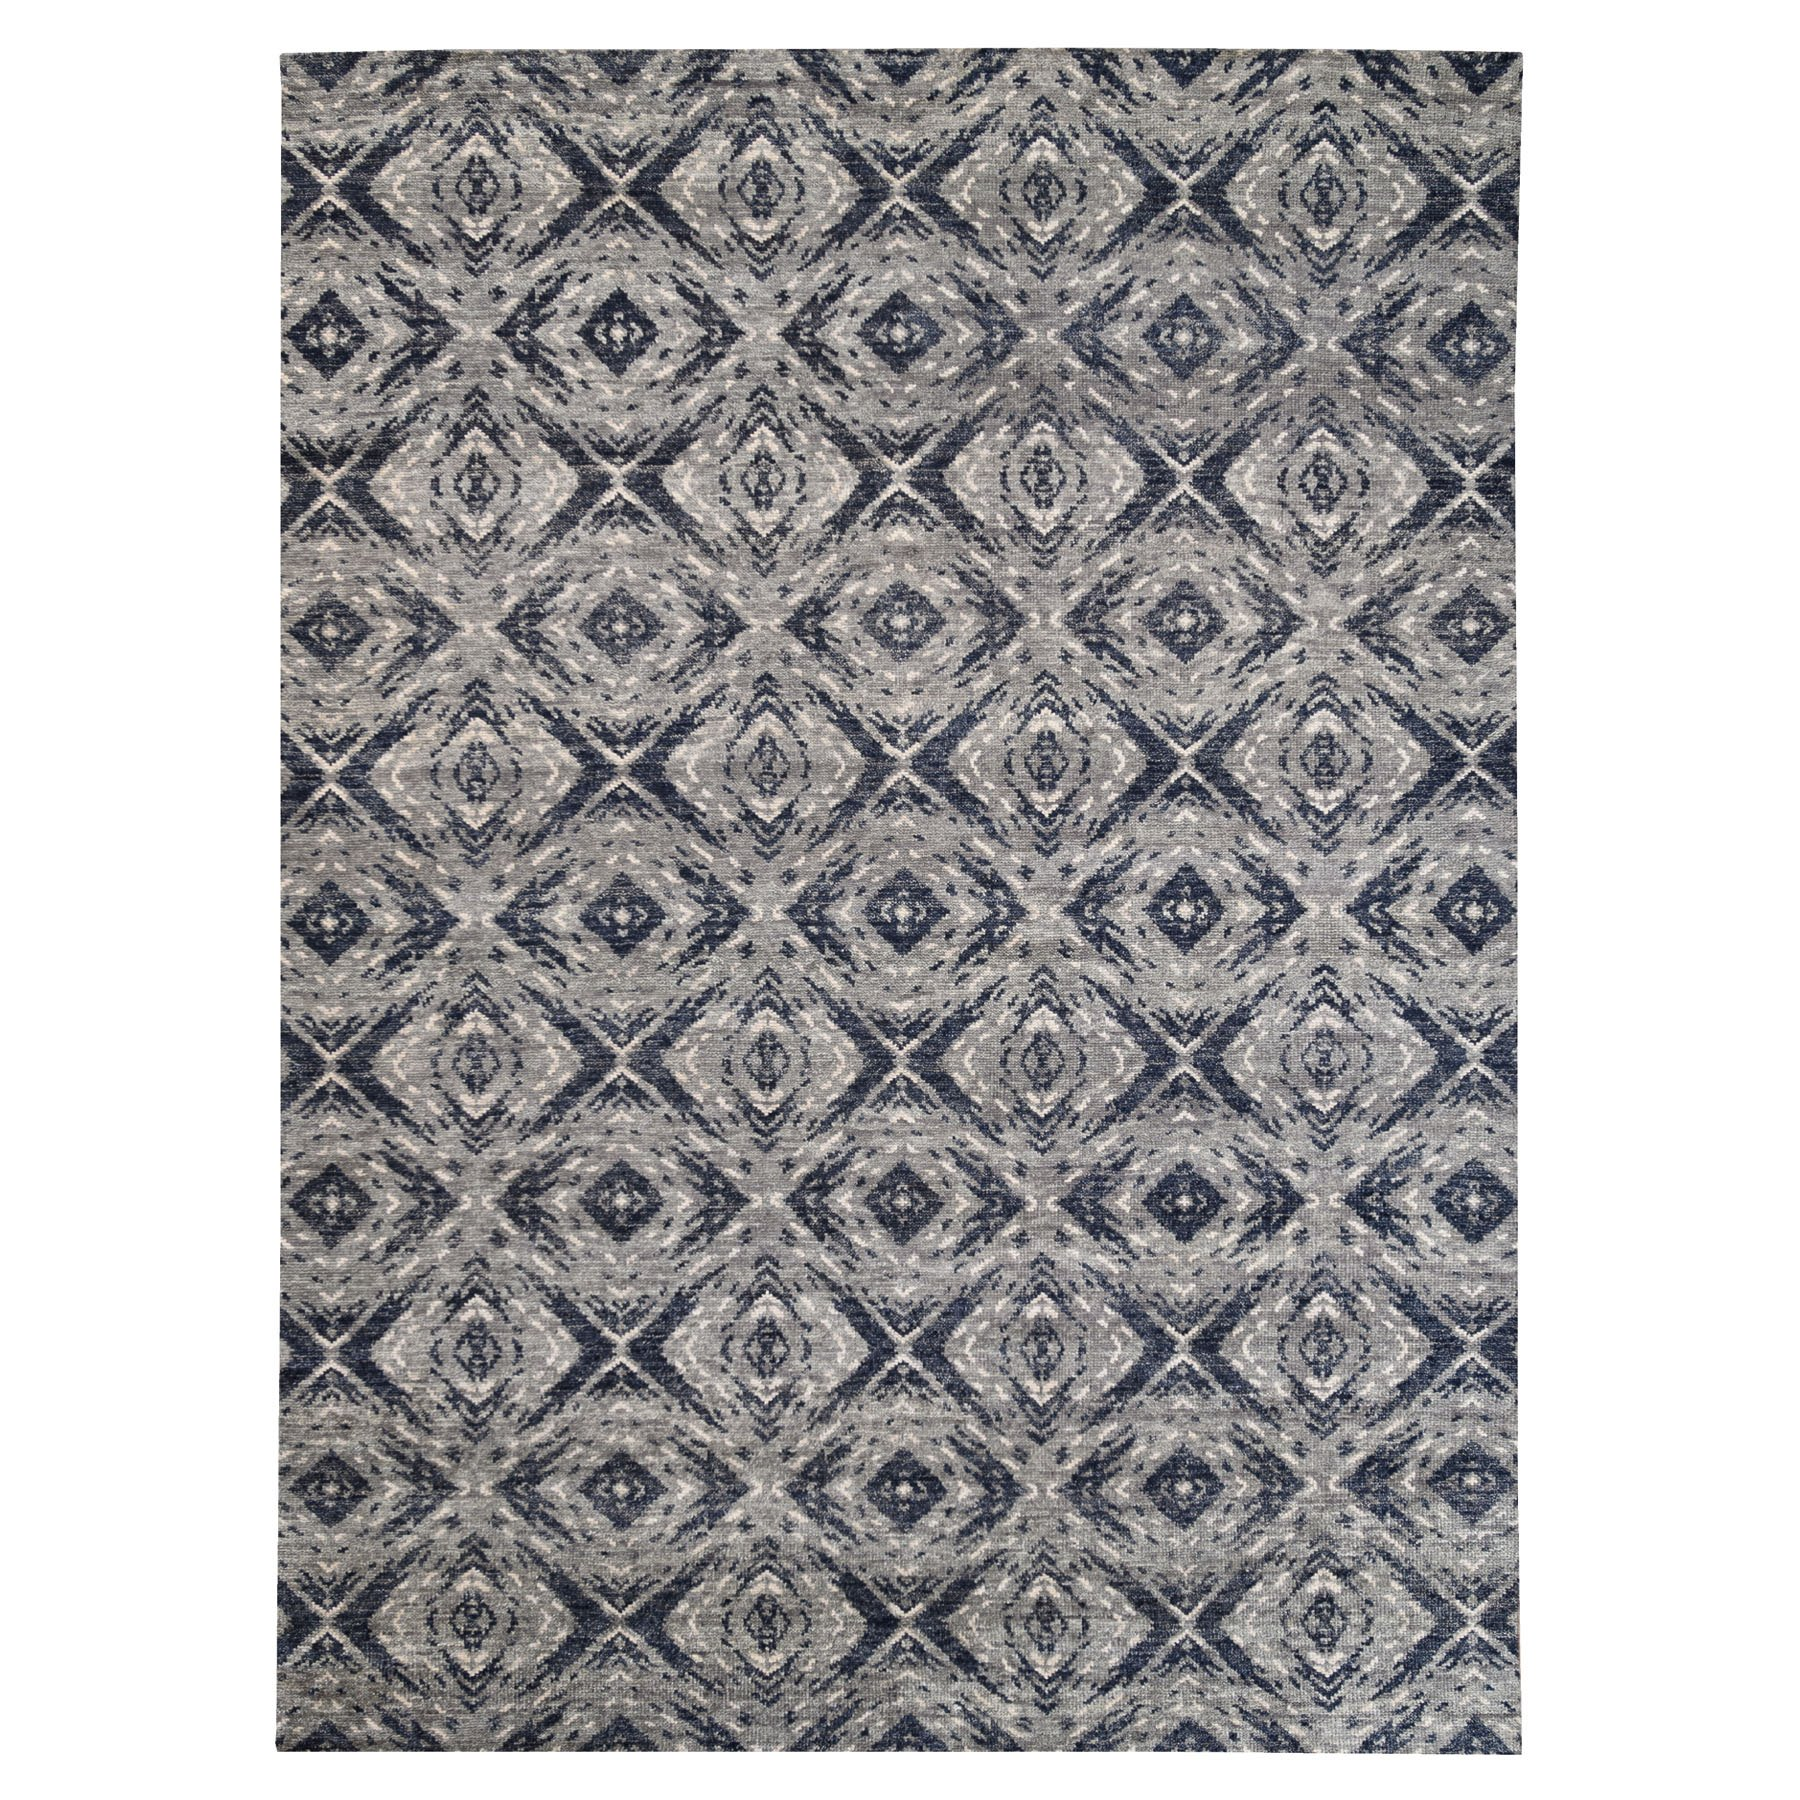 Nomadic And Village Collection Hand Knotted Black Rug No: 1124400